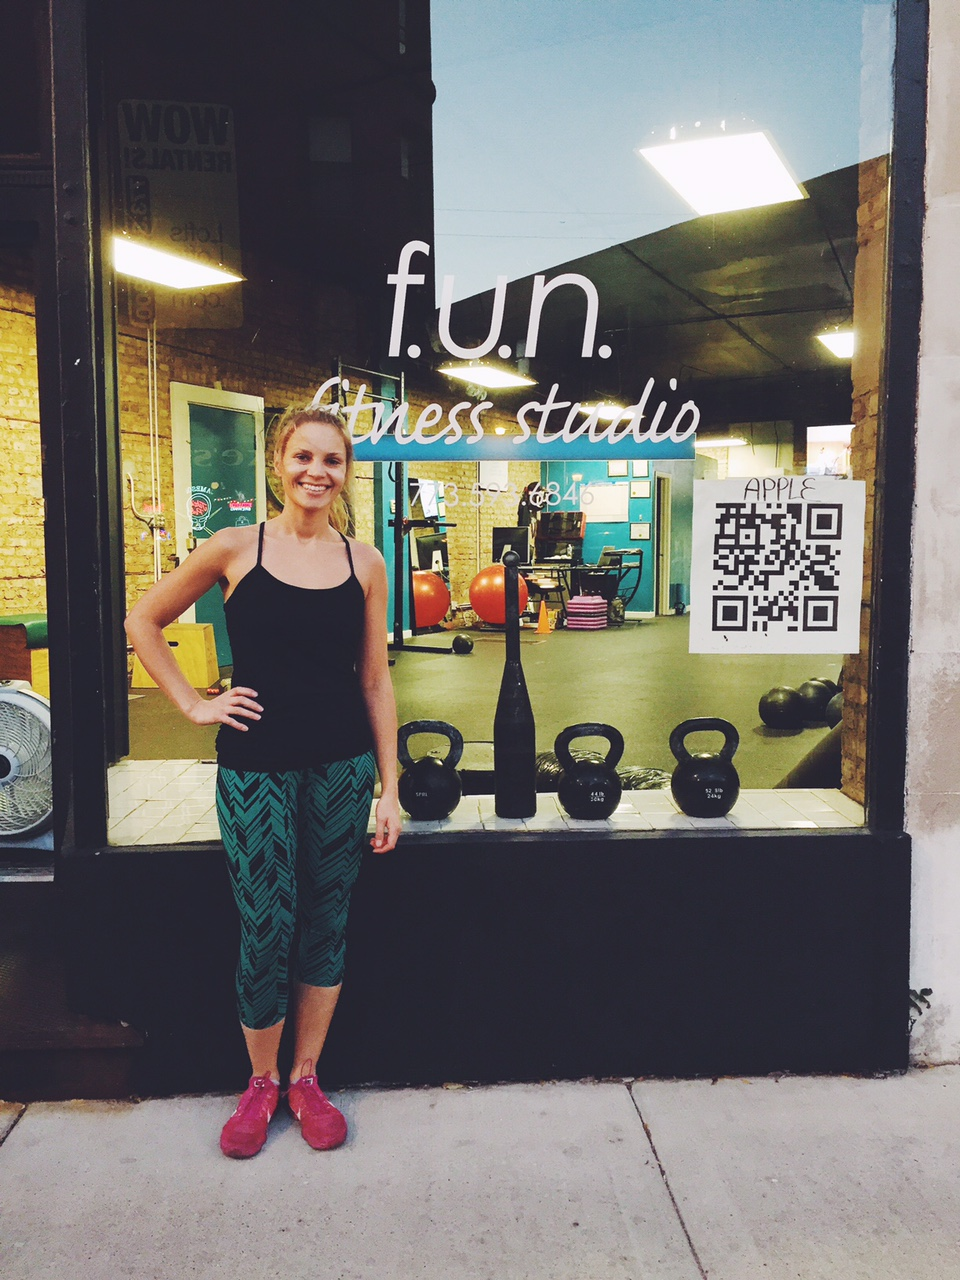 Monique in front of a fitness studio